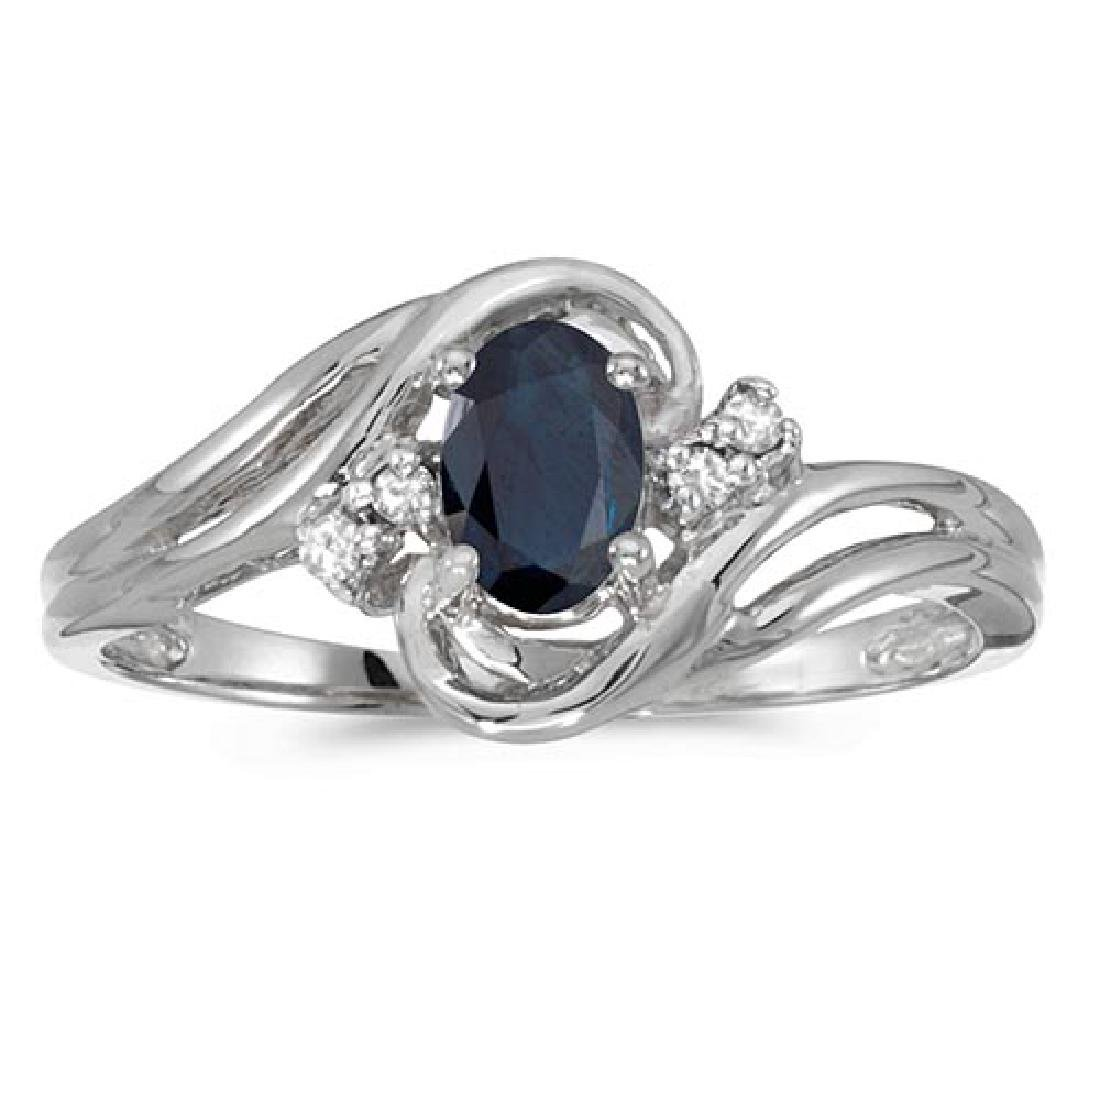 Certified 10k White Gold Oval Sapphire And Diamond Ring